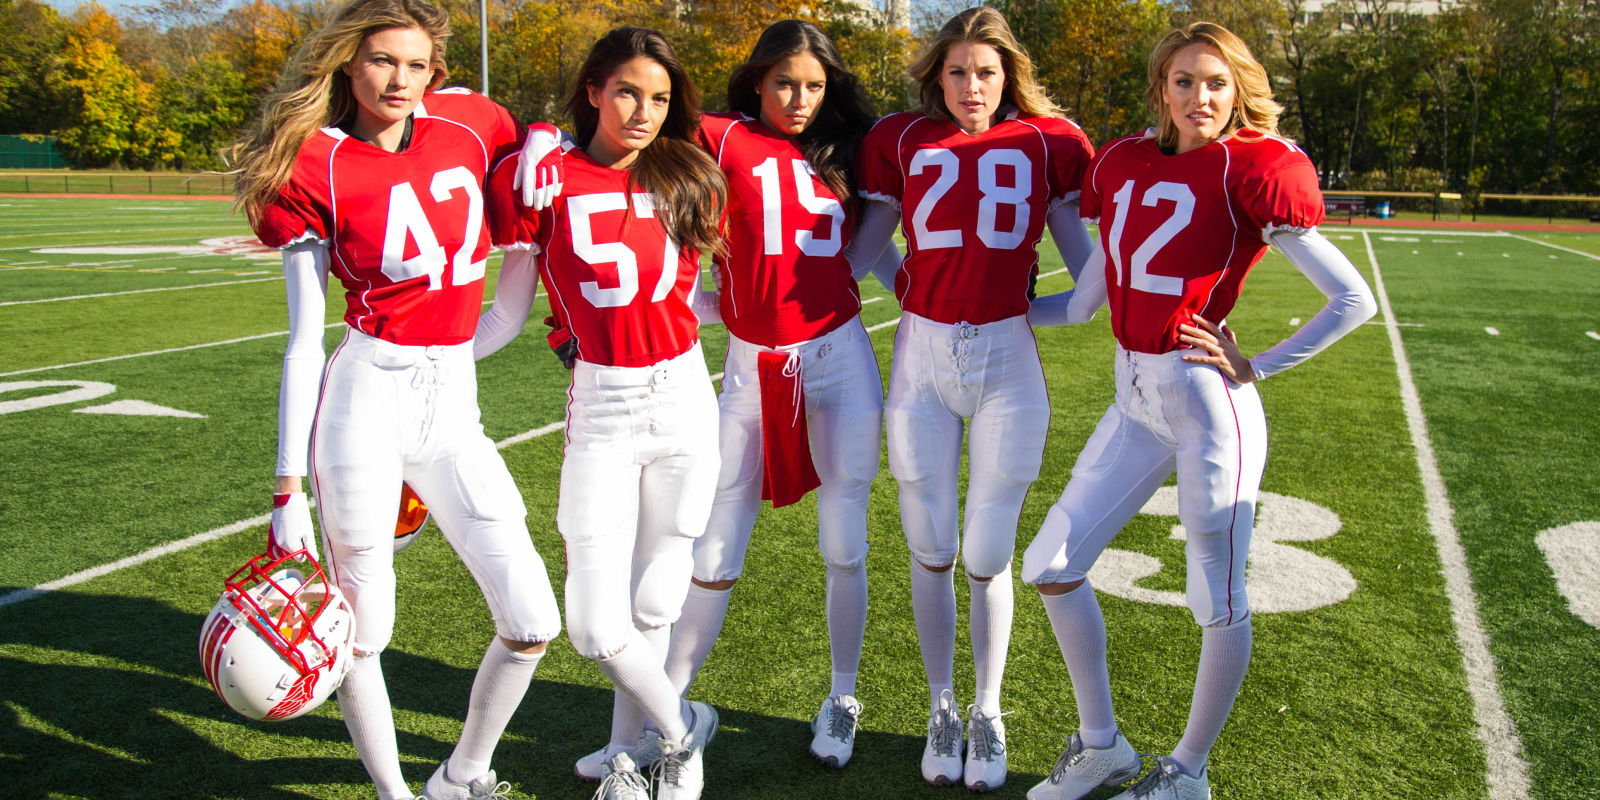 Watch the Victoria's Secret Angels Play Football forecast